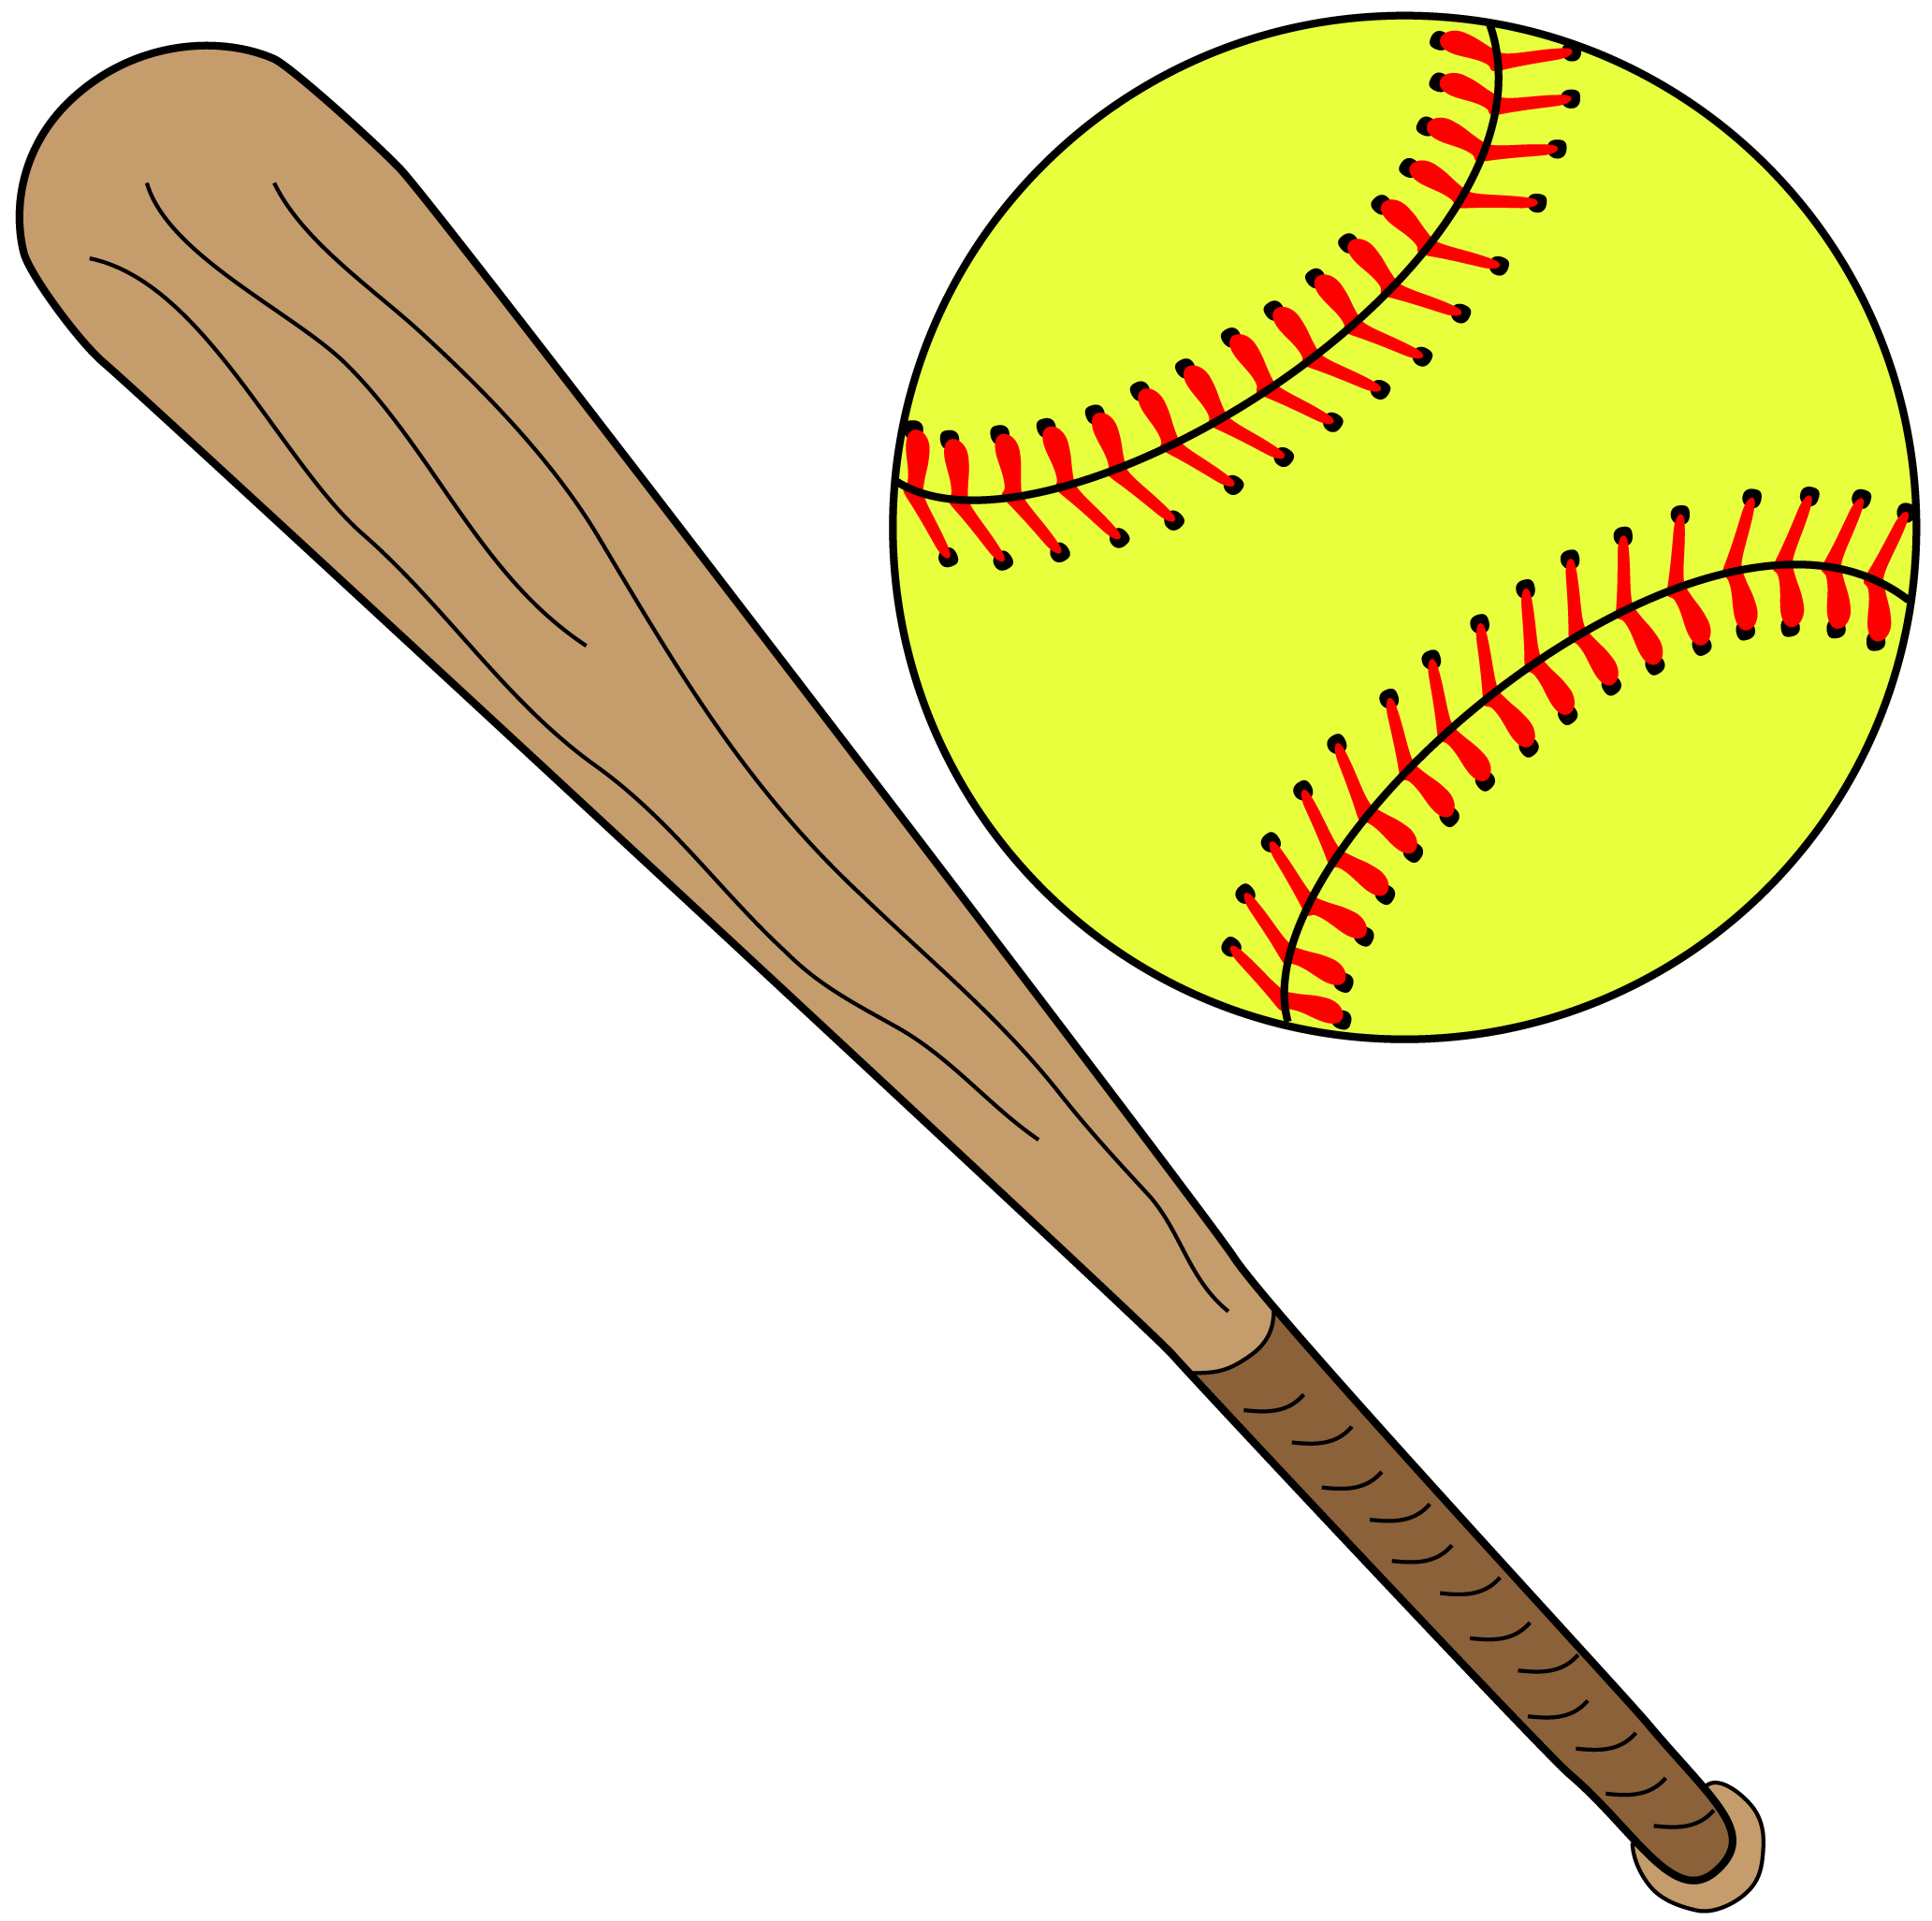 Softball png images. With bat free icons